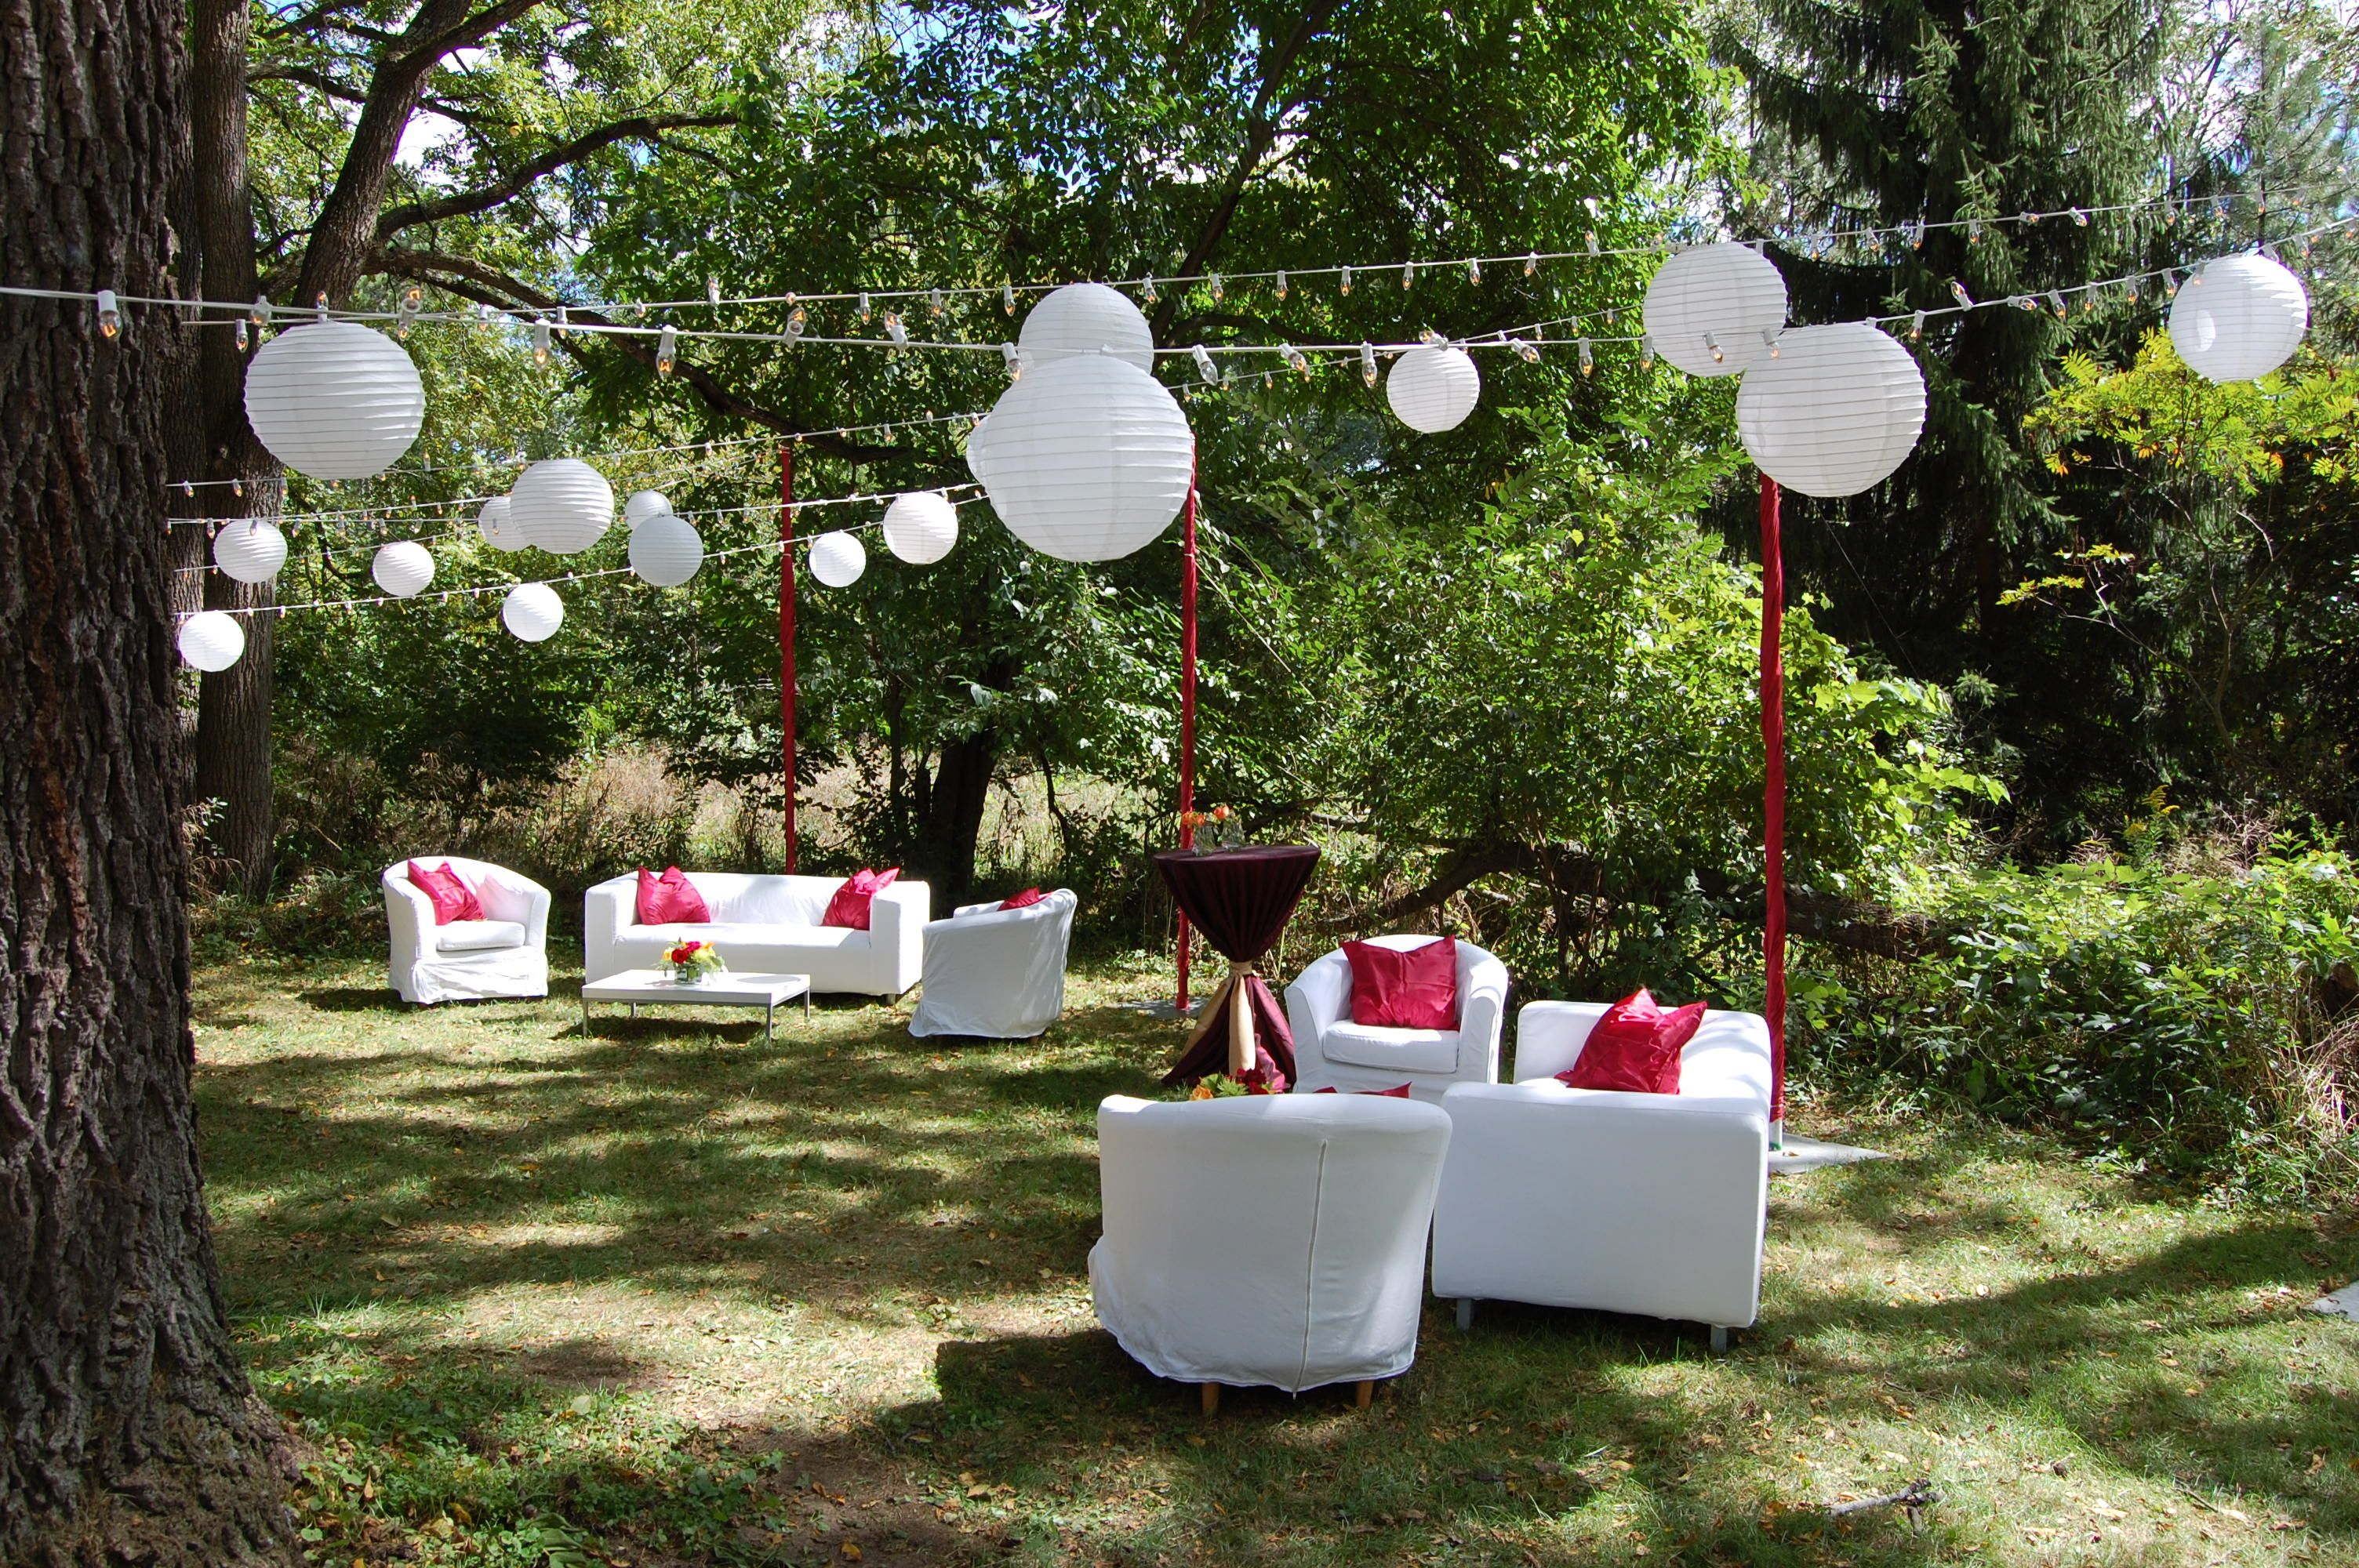 Paper Lanterns - #paperlanterns #outdoorevent #loungearea #ColonialEvents